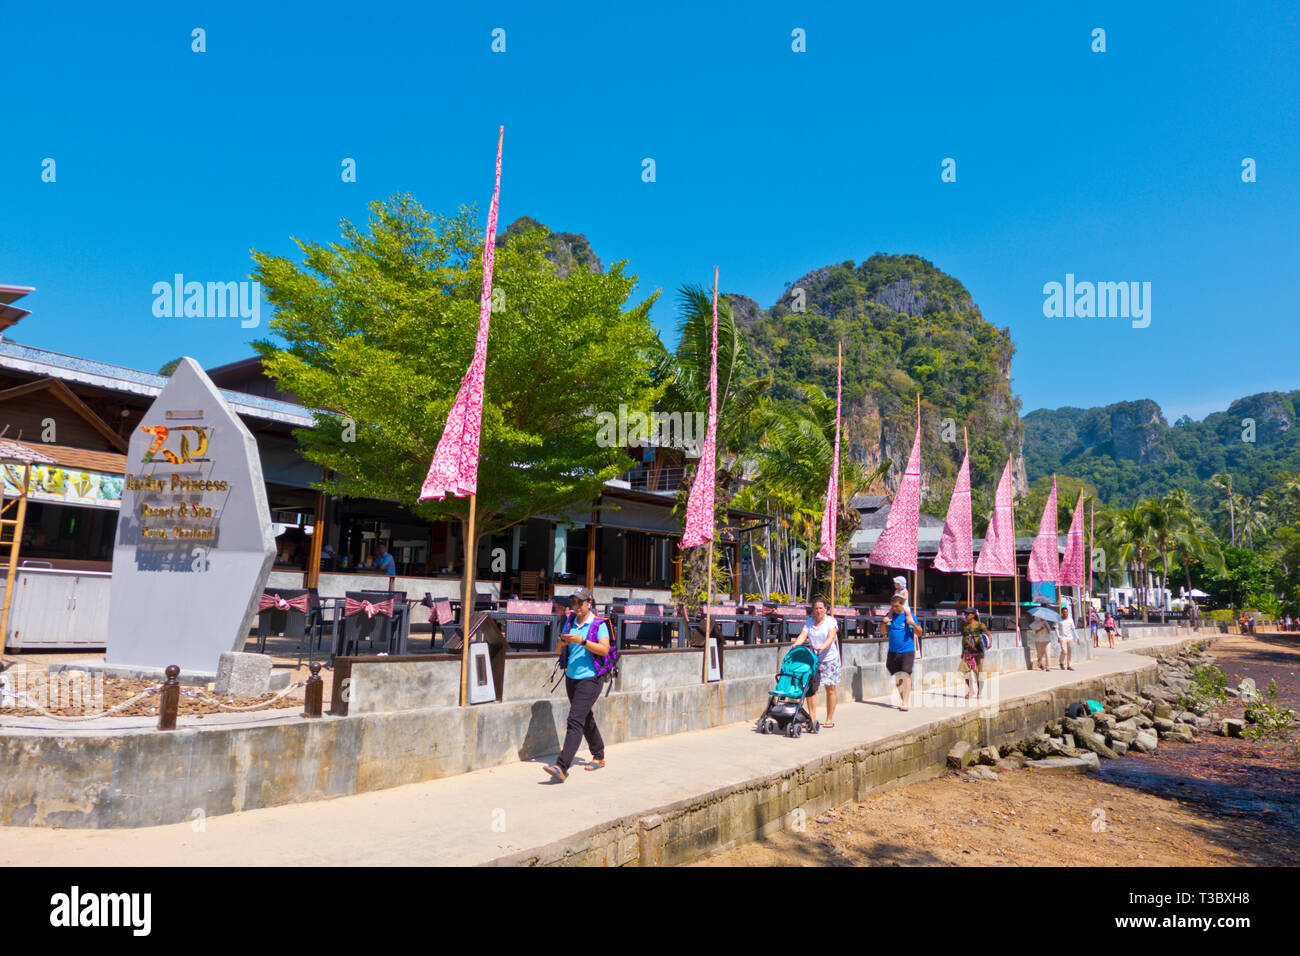 Seaside promenade between the floating pier and Railay highlands, East Railay, Krabi province, Thailand - Stock Image